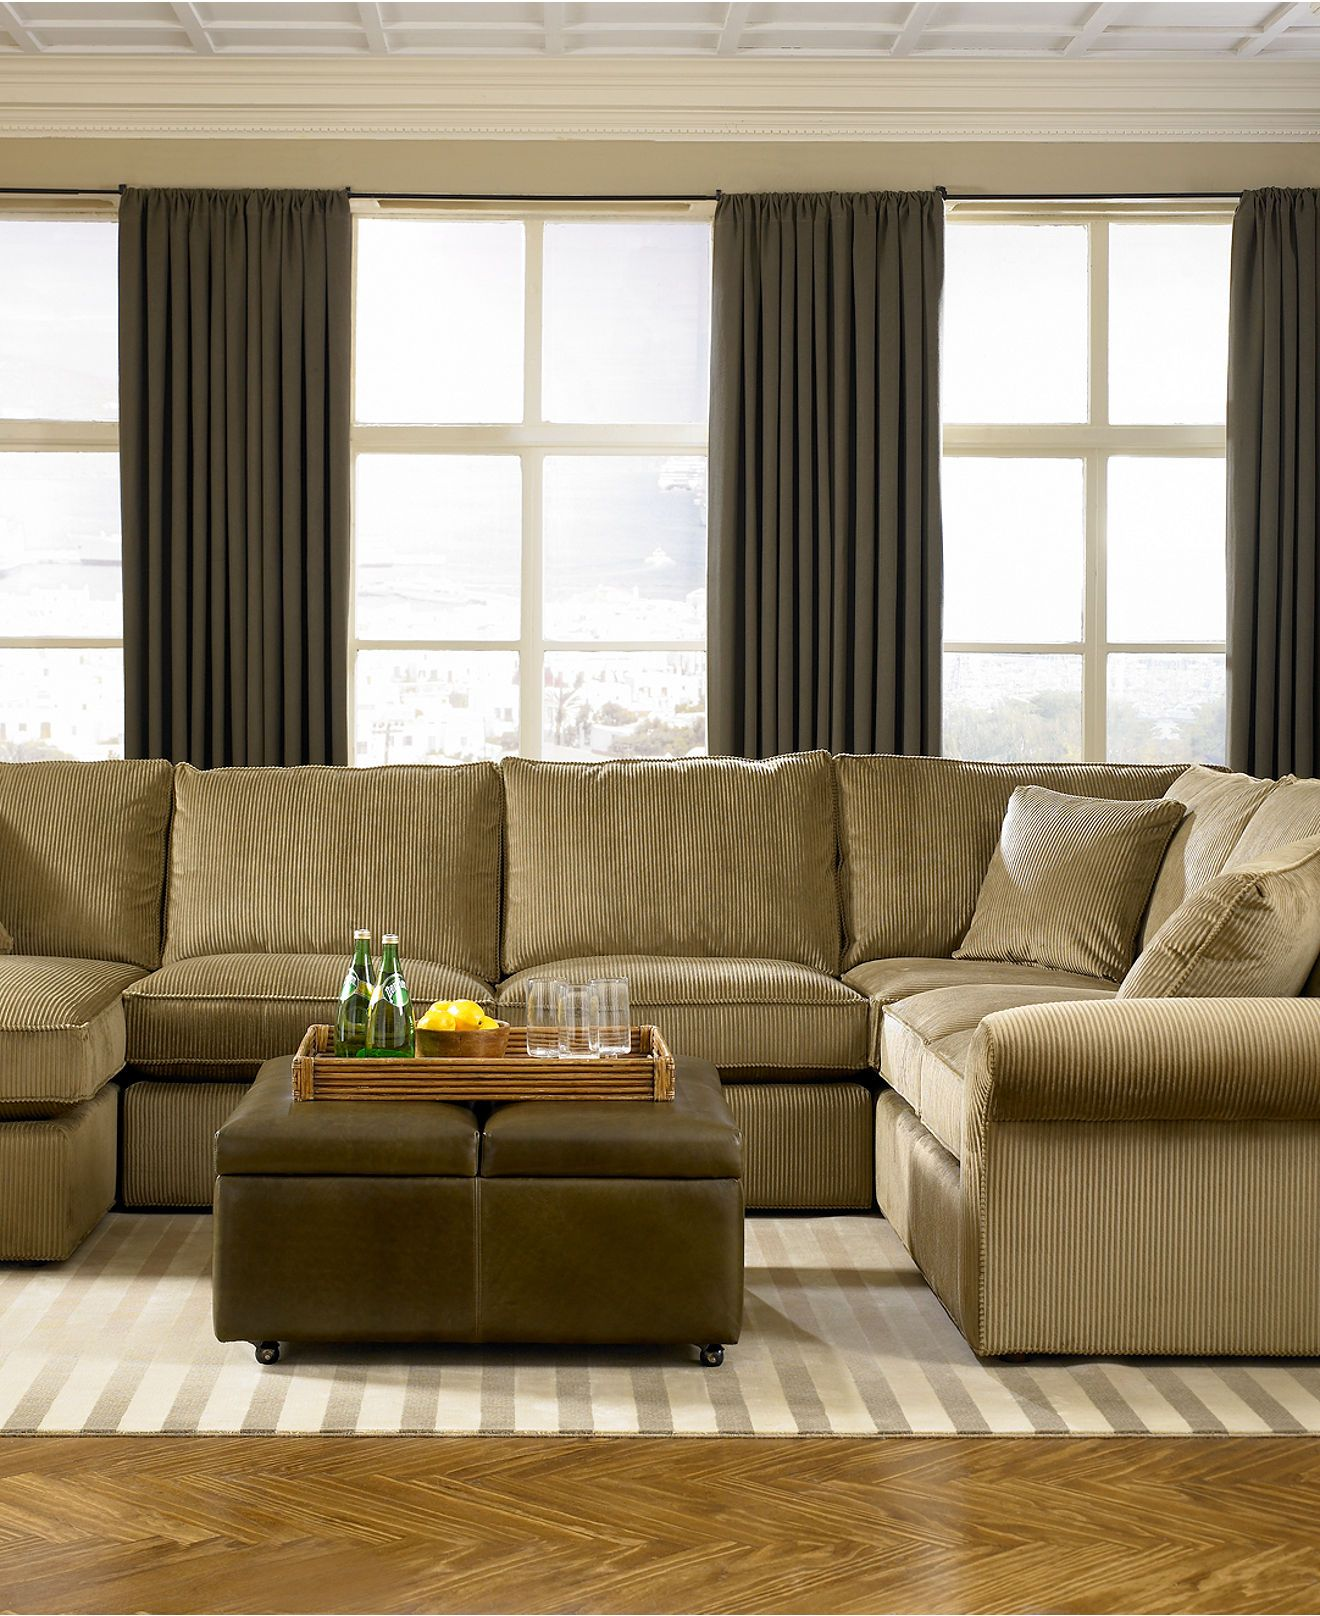 Macys Curtains For Living Room Our Ale Corduroy Couch On The Way Ohhh Couches Pinterest